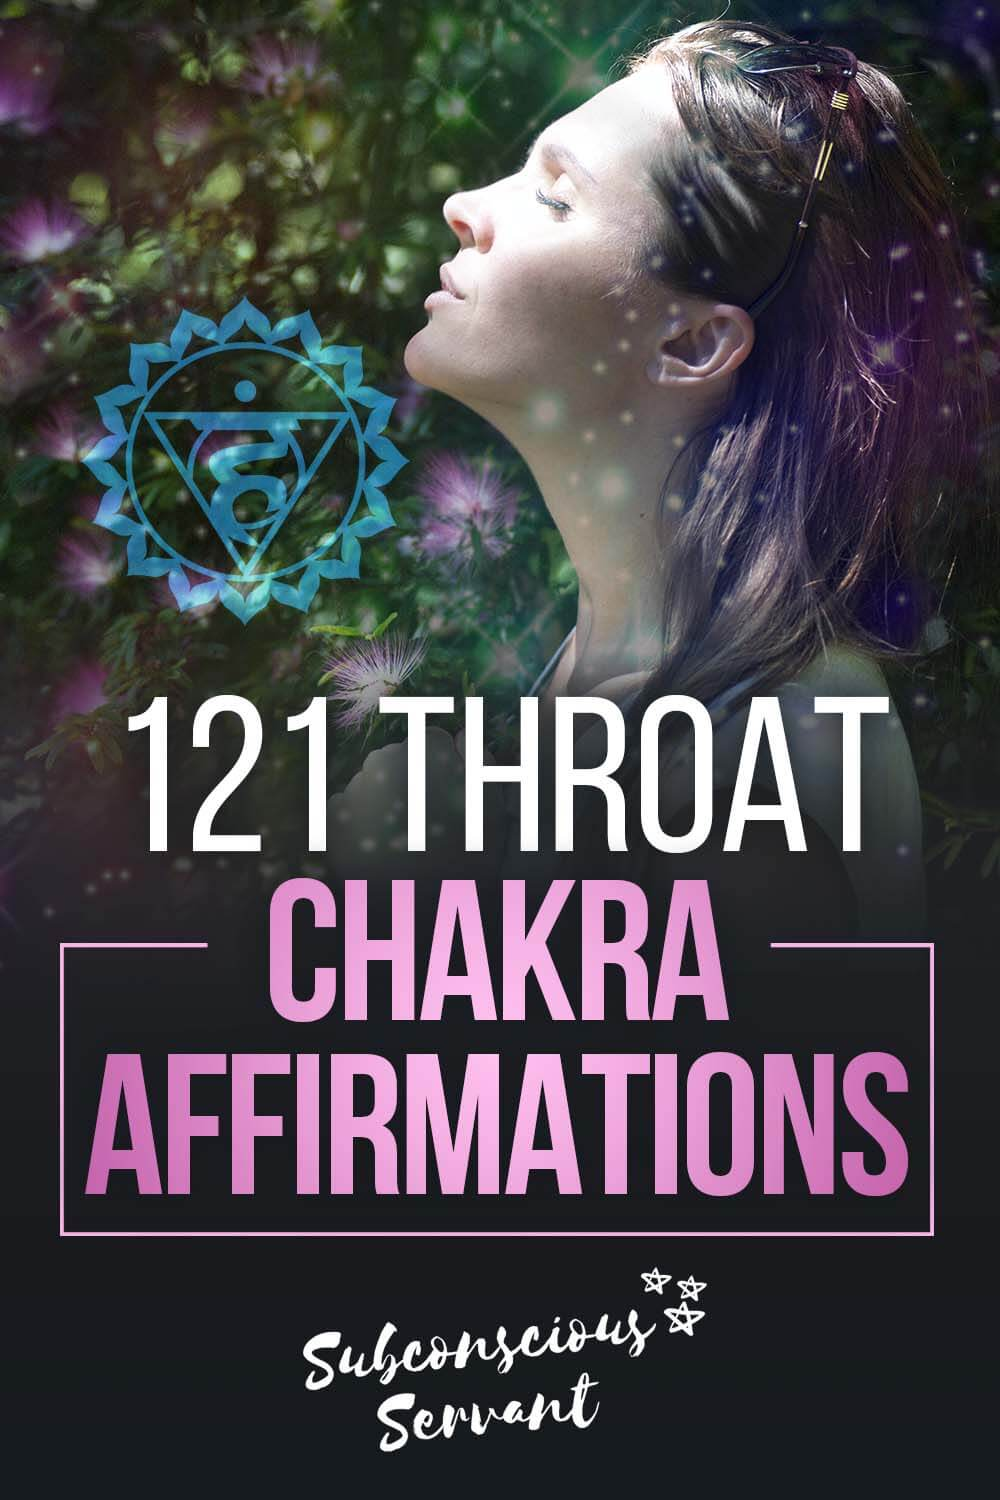 121 Throat Chakra Affirmations + How To Effectively Use Them